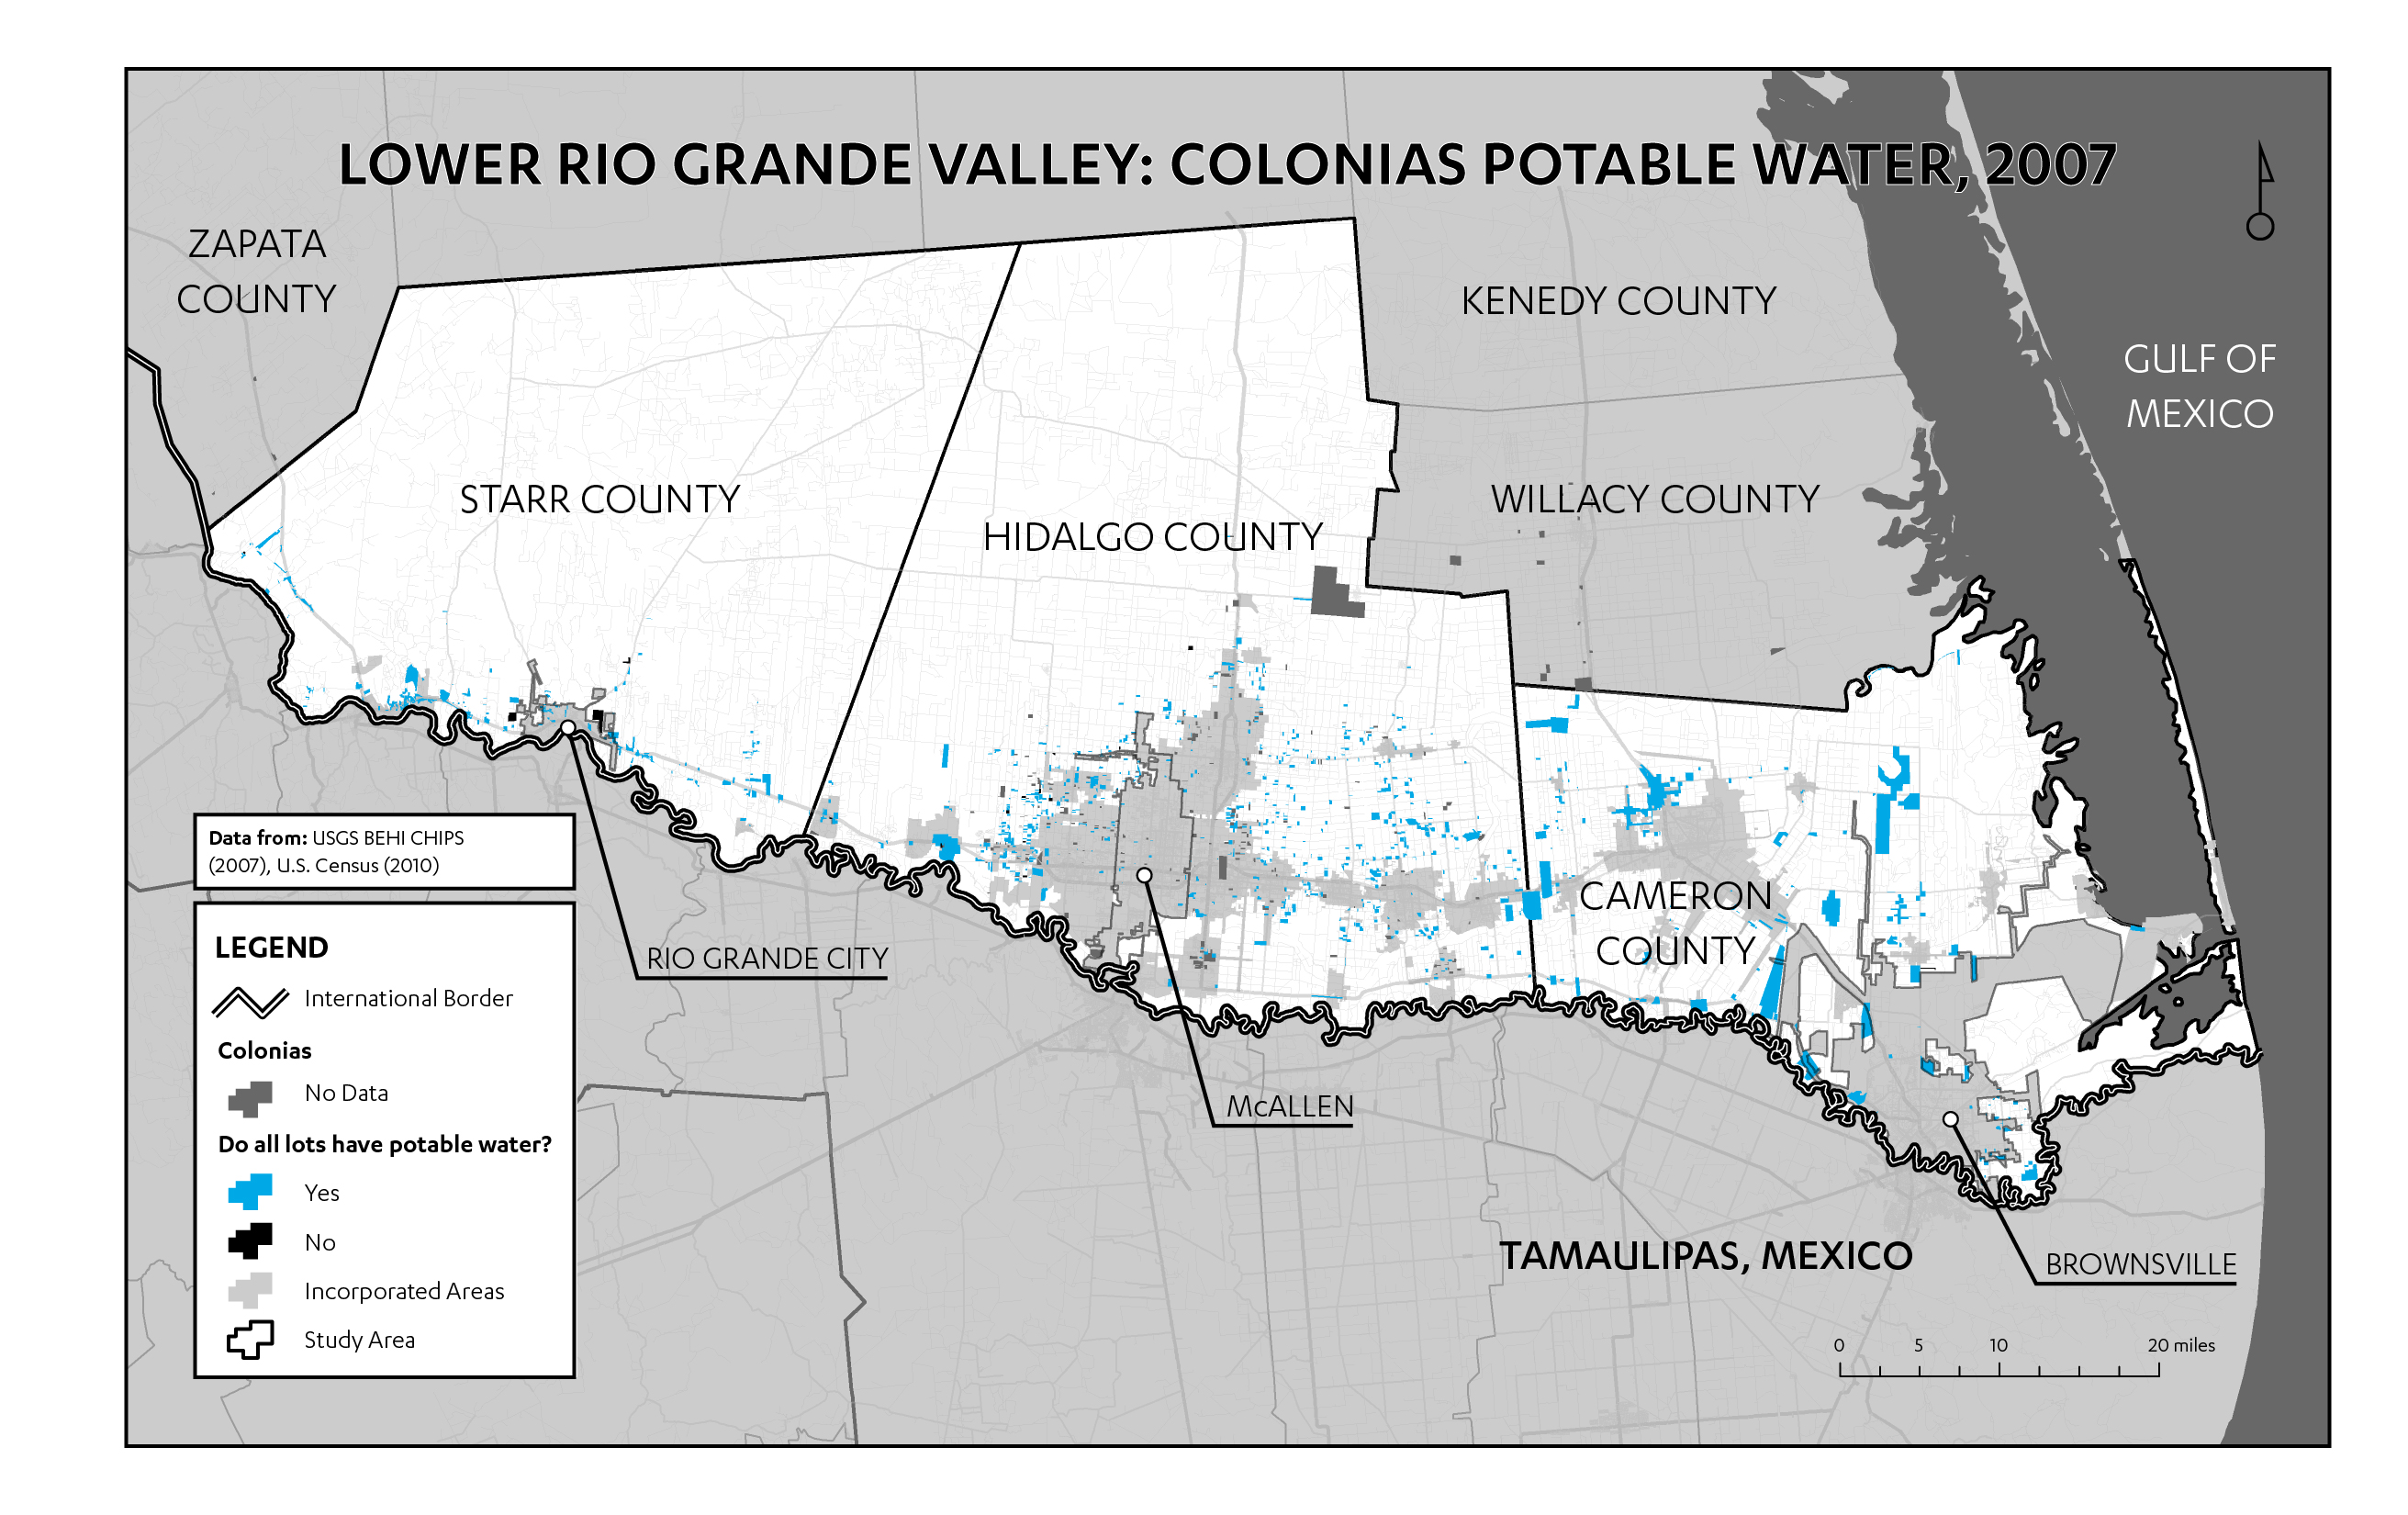 Figure 8: Map of potable water access in Lower Rio Grande Valley colonias (data from CHIPS 2007). One positive finding of the CHIPS data is that the majority of colonias have reliable potable water. Given the importance of water for survival, it is logical to assume that this would be the first service to reach colonias. But if many colonias are not captured in the CHIPS data set, it is possible that the unrecognized colonias are less likely than the recognized ones to have potable water. Most nonprofit leaders agreed, however, that potable water is no longer a pressing issue in colonias.